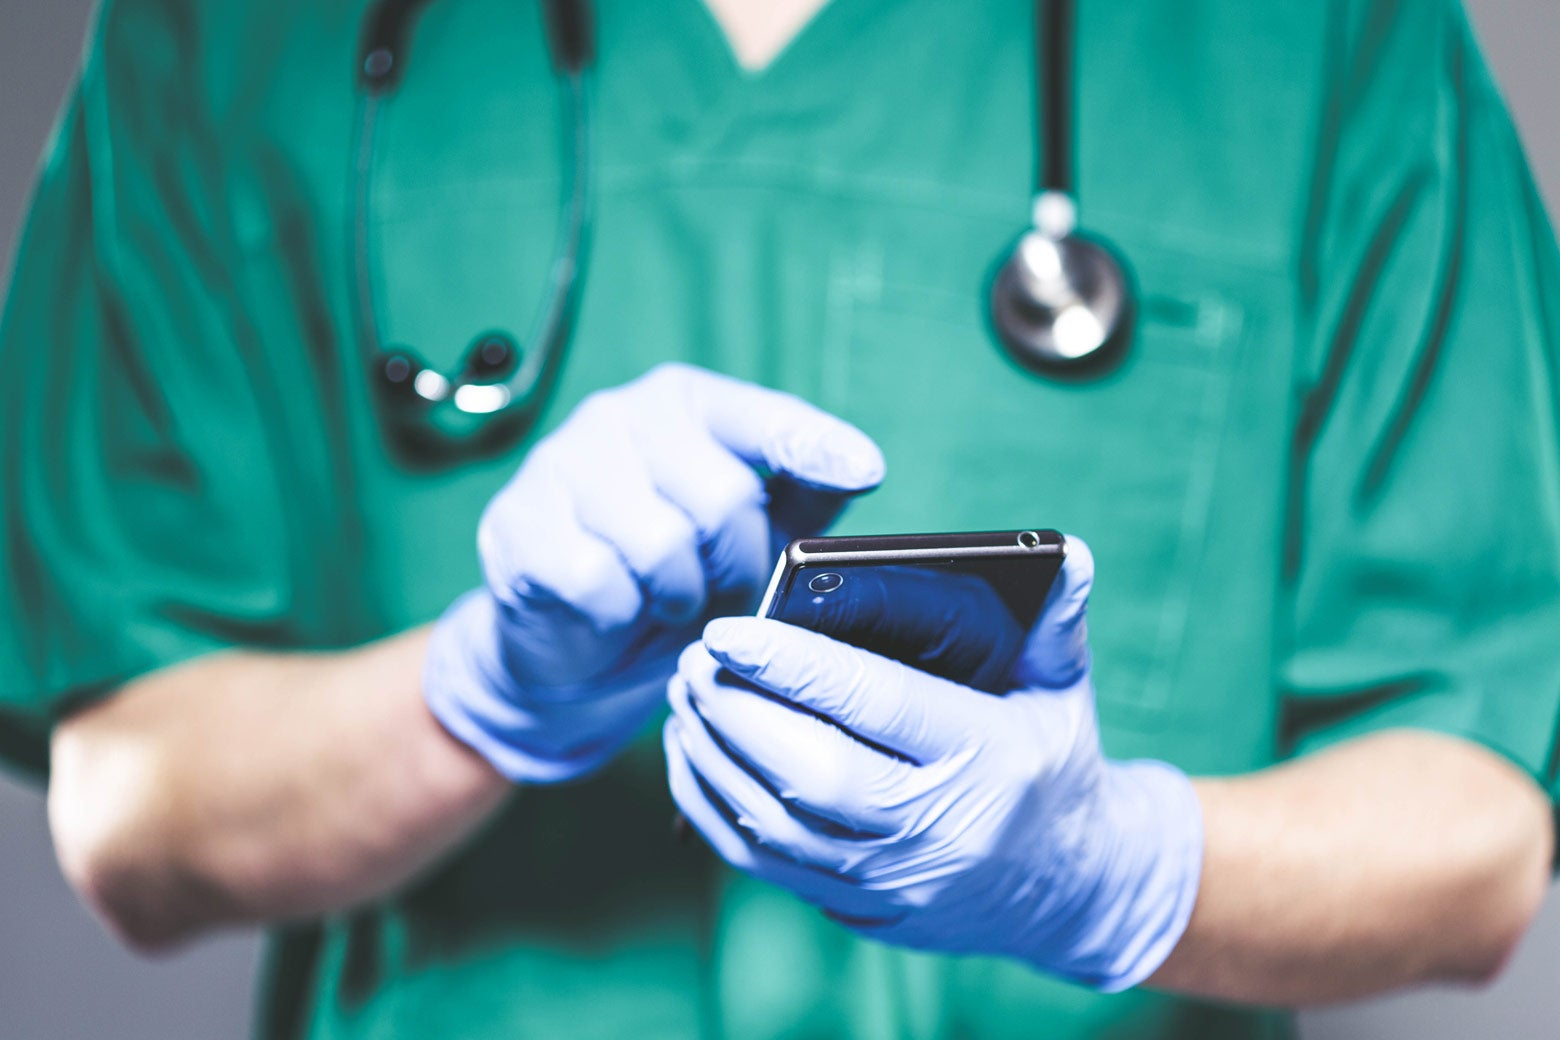 A doctor in scrubs, wearing gloves, looking at a cellphone.